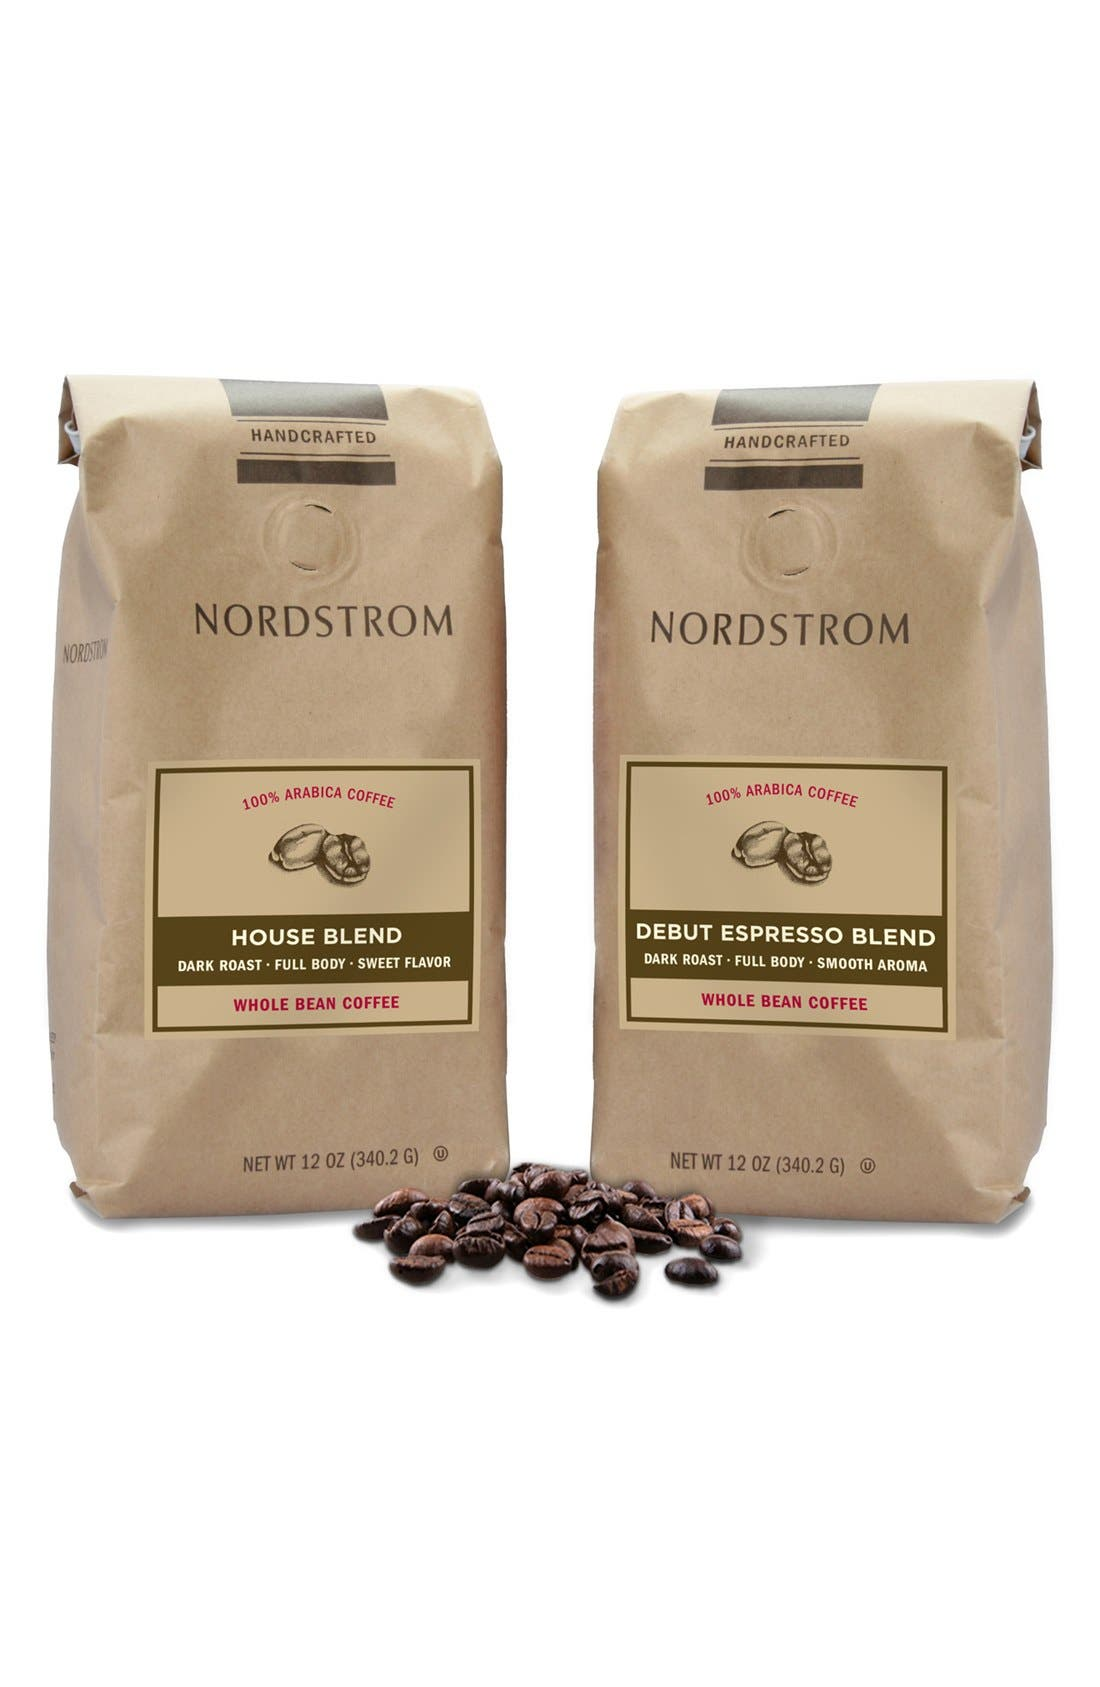 Nordstrom Coffee 'Debut Espresso Blend' & 'House Blend' Whole Bean Coffee (2-Pack)